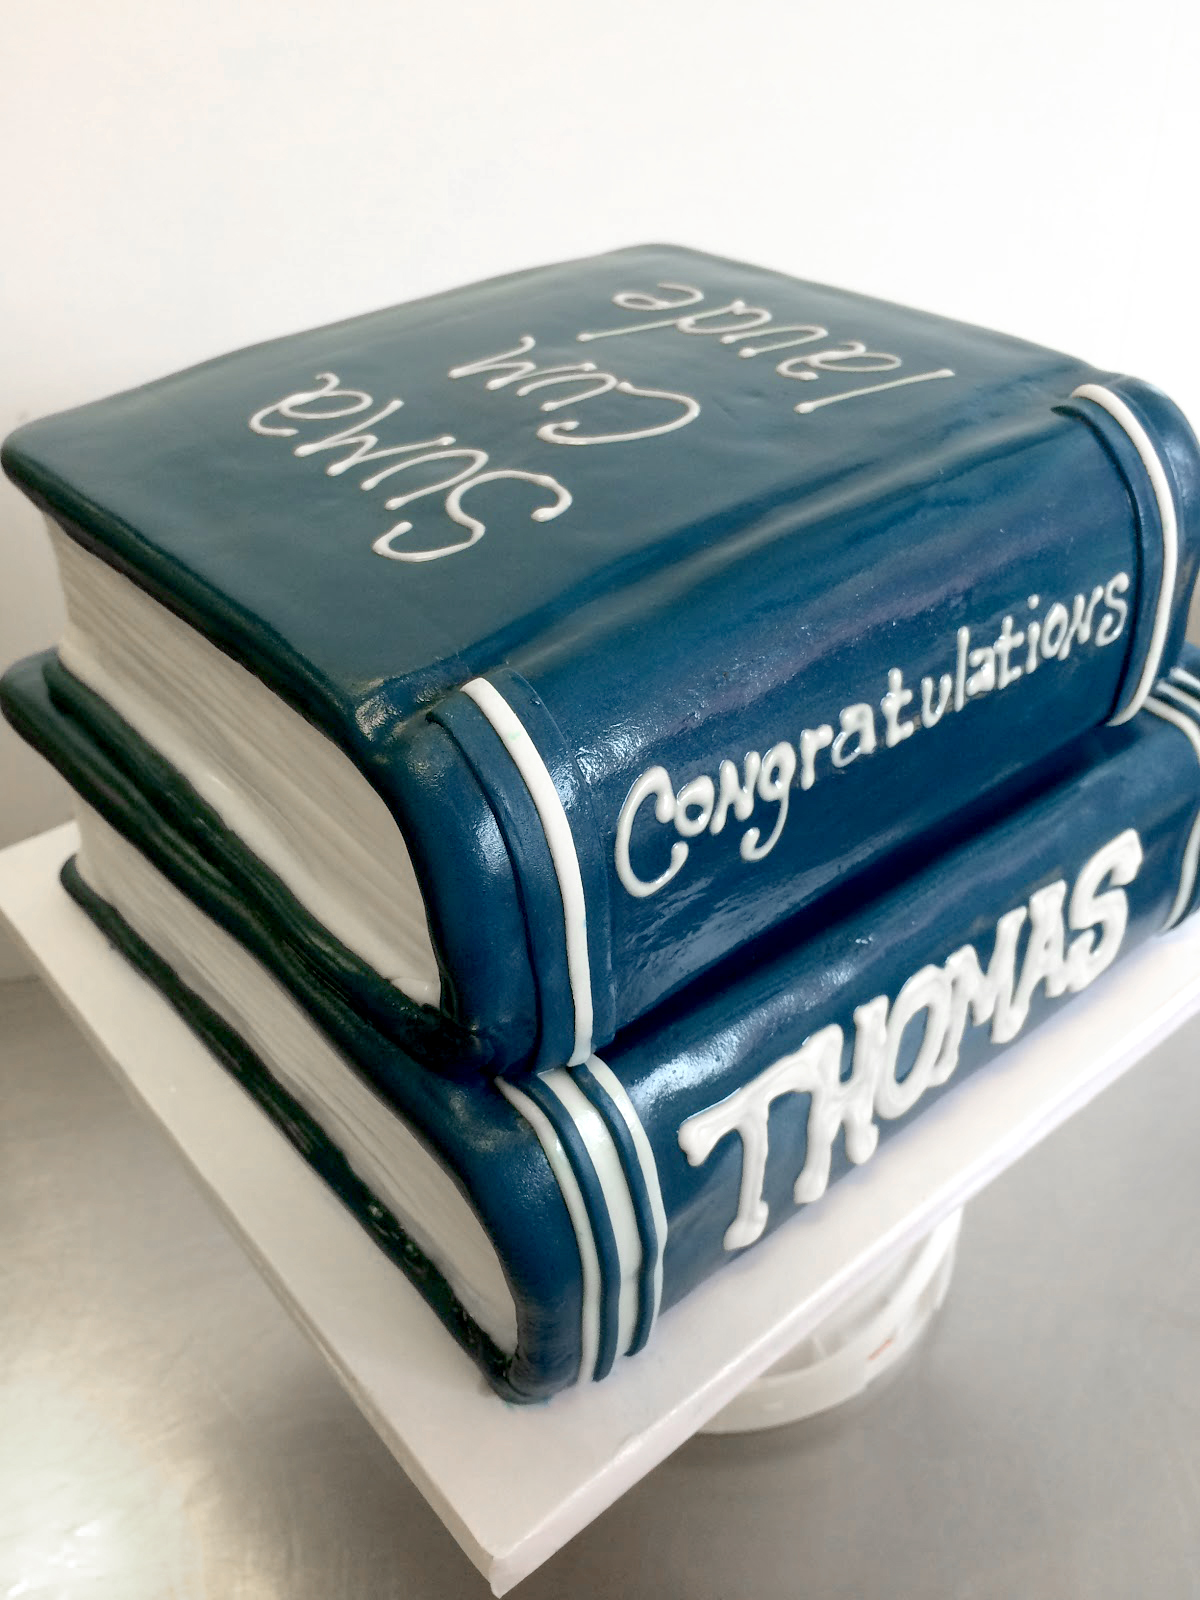 Scultped books cake.jpg